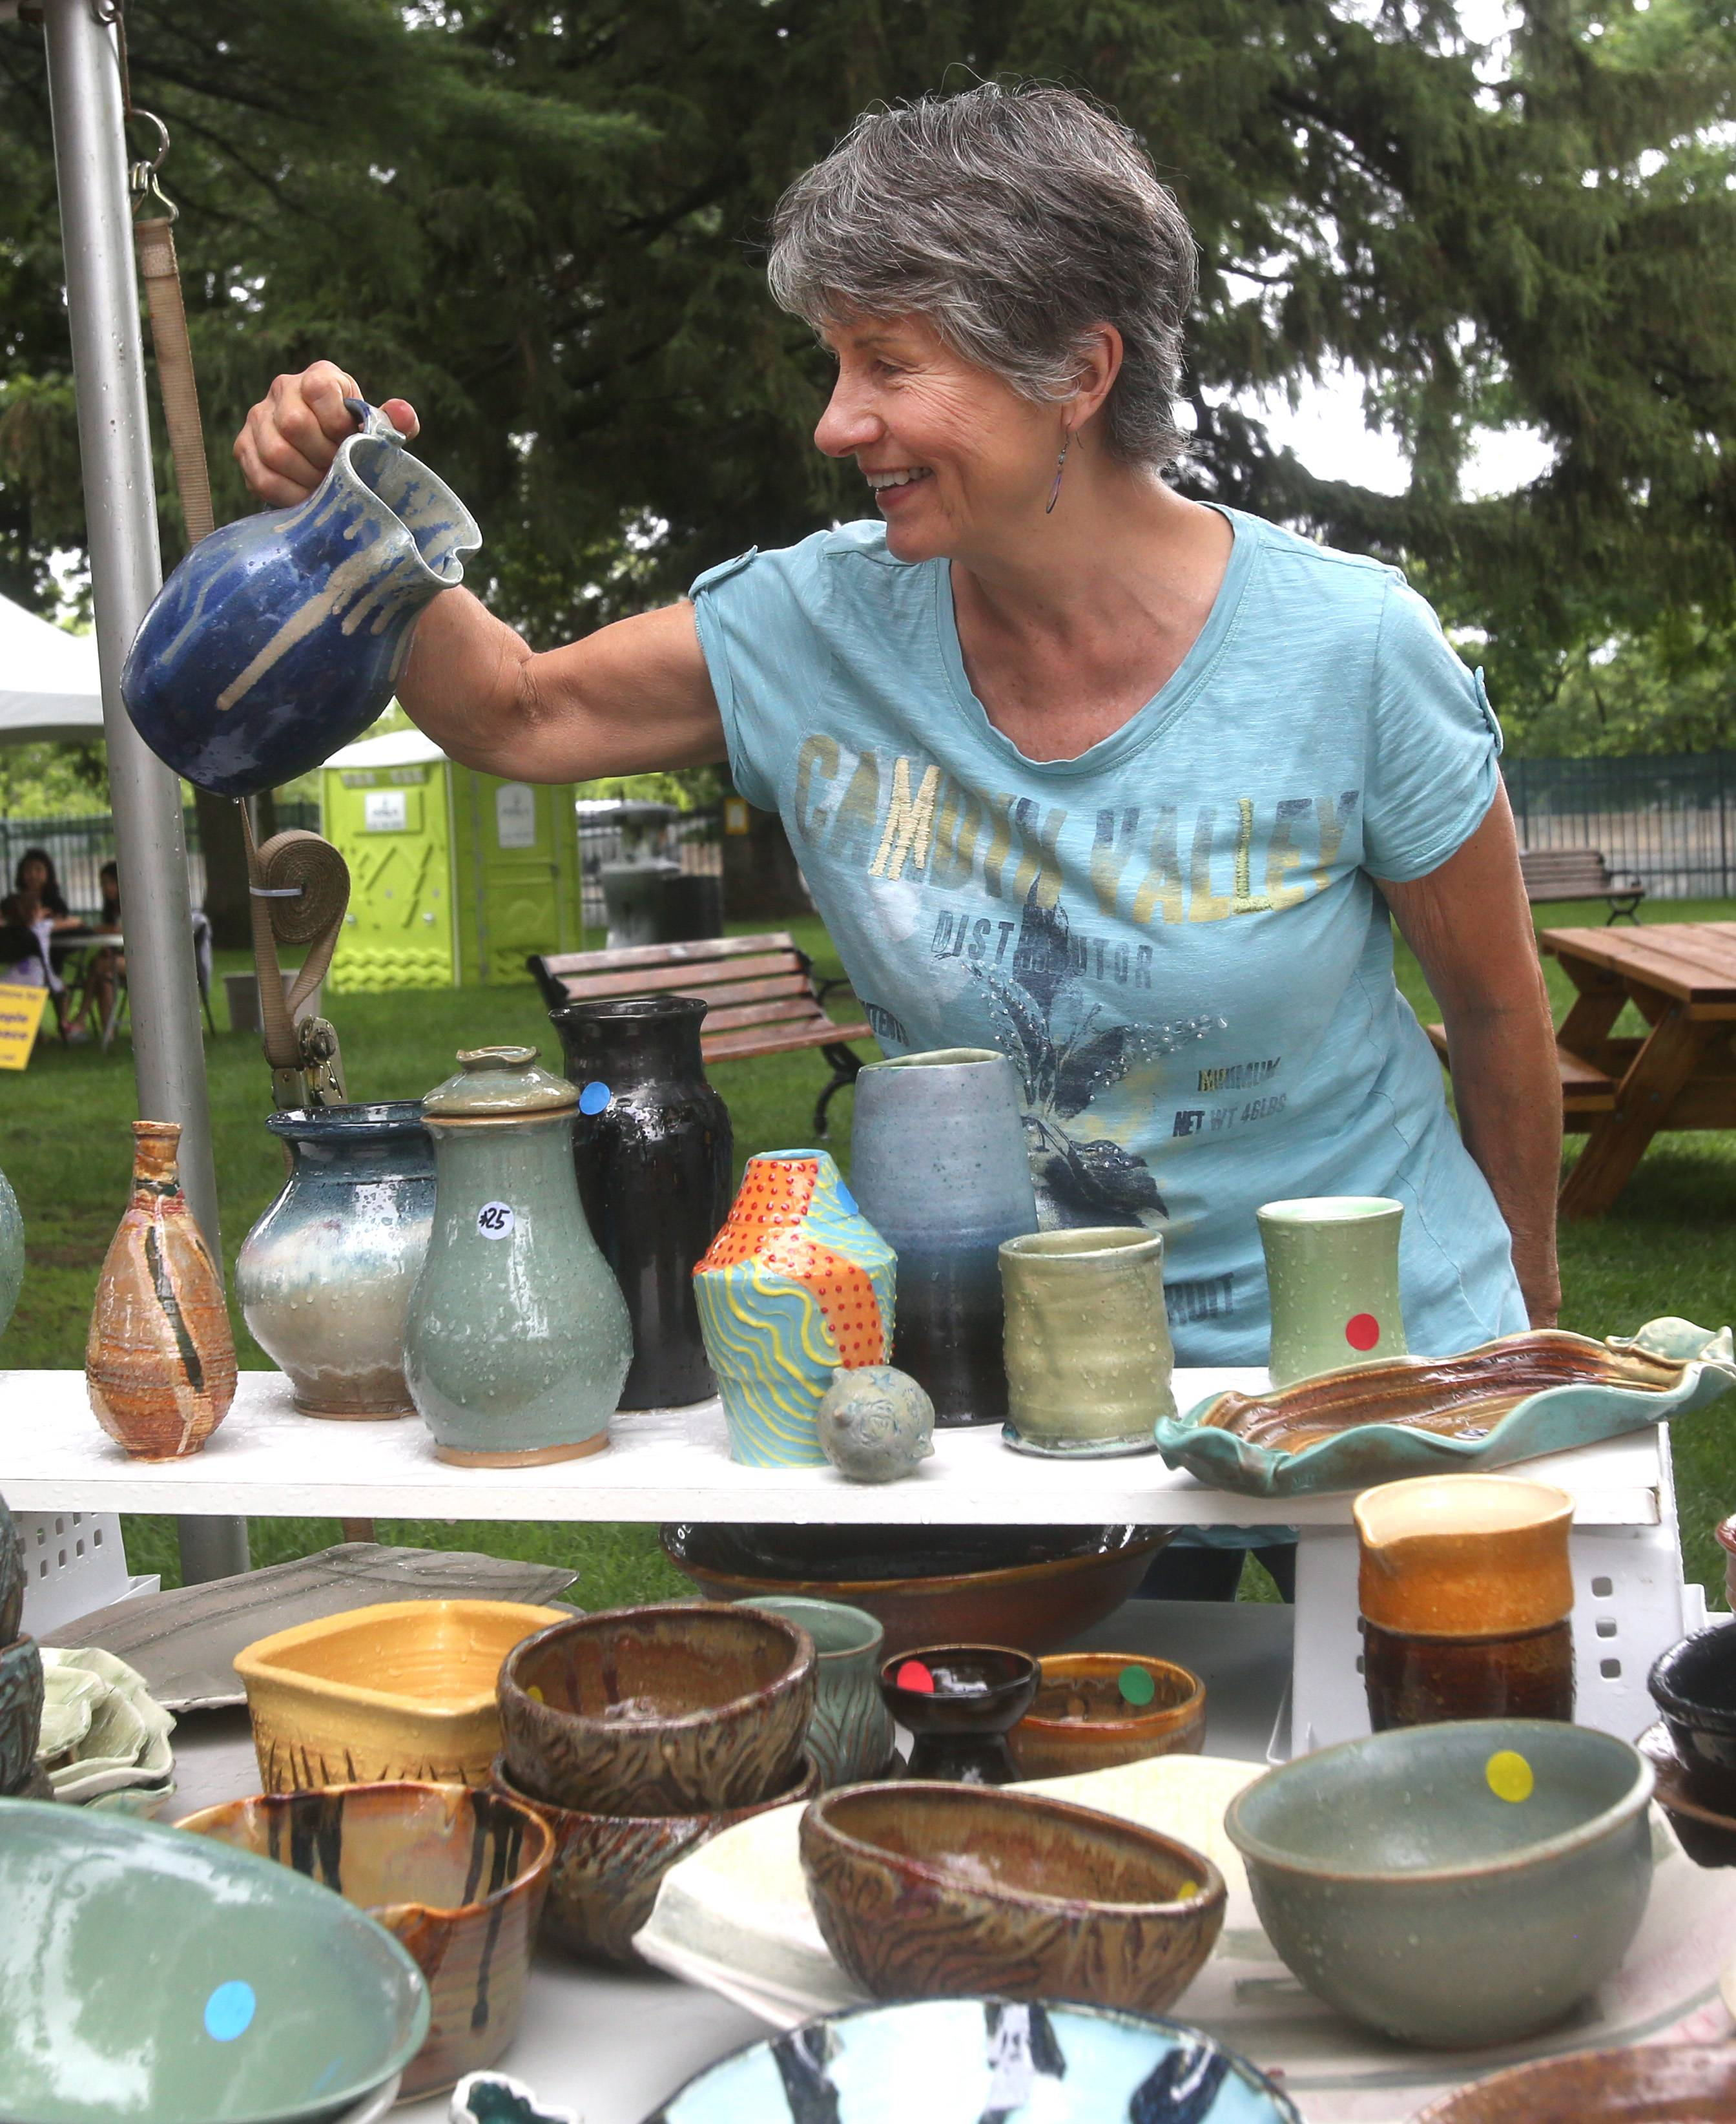 Sue Borghesi, a resident artist at Clay Space Ceramic Arts Studio in Lisle, looks over a pitcher during the Naperville Woman's Club's 55th annual Juried Art Fair at Naper Settlement. All proceeds from the 55 artists in the cooperative at Clay Space Ceramic Arts are donated back to various food pantries throughout the Western suburban communities.